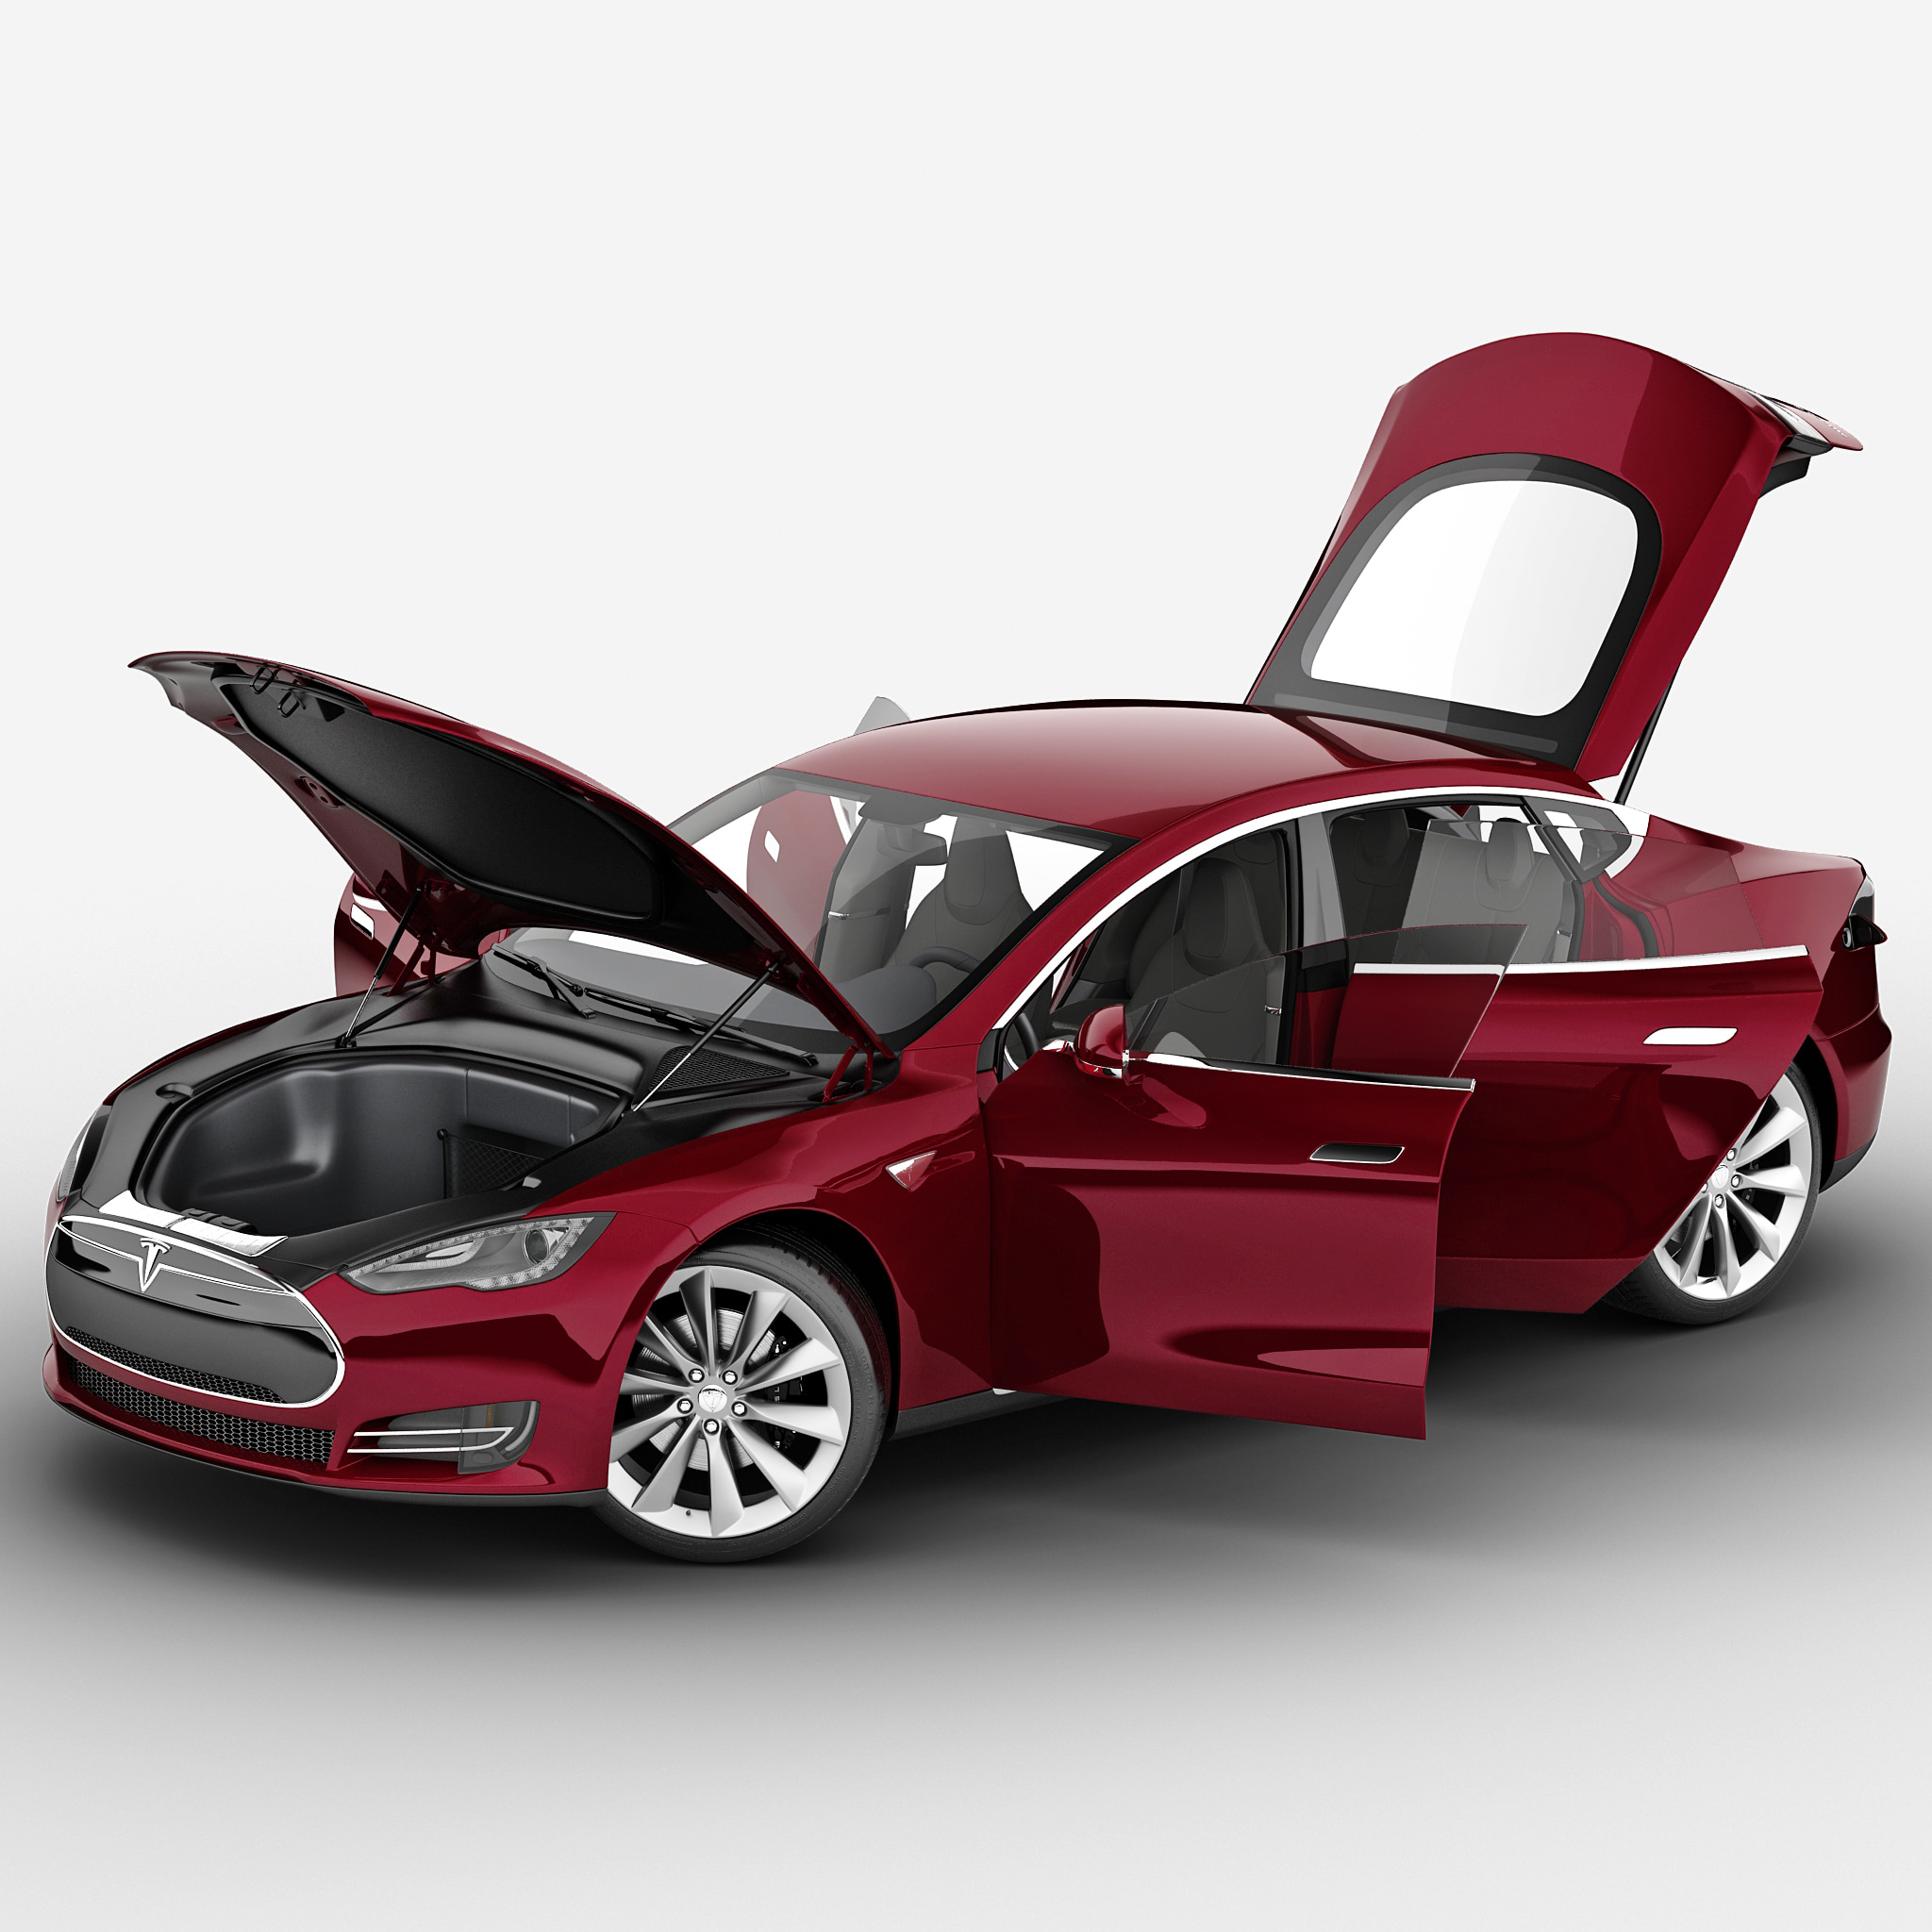 Tesla Model S 2014 Rigged_31.jpg